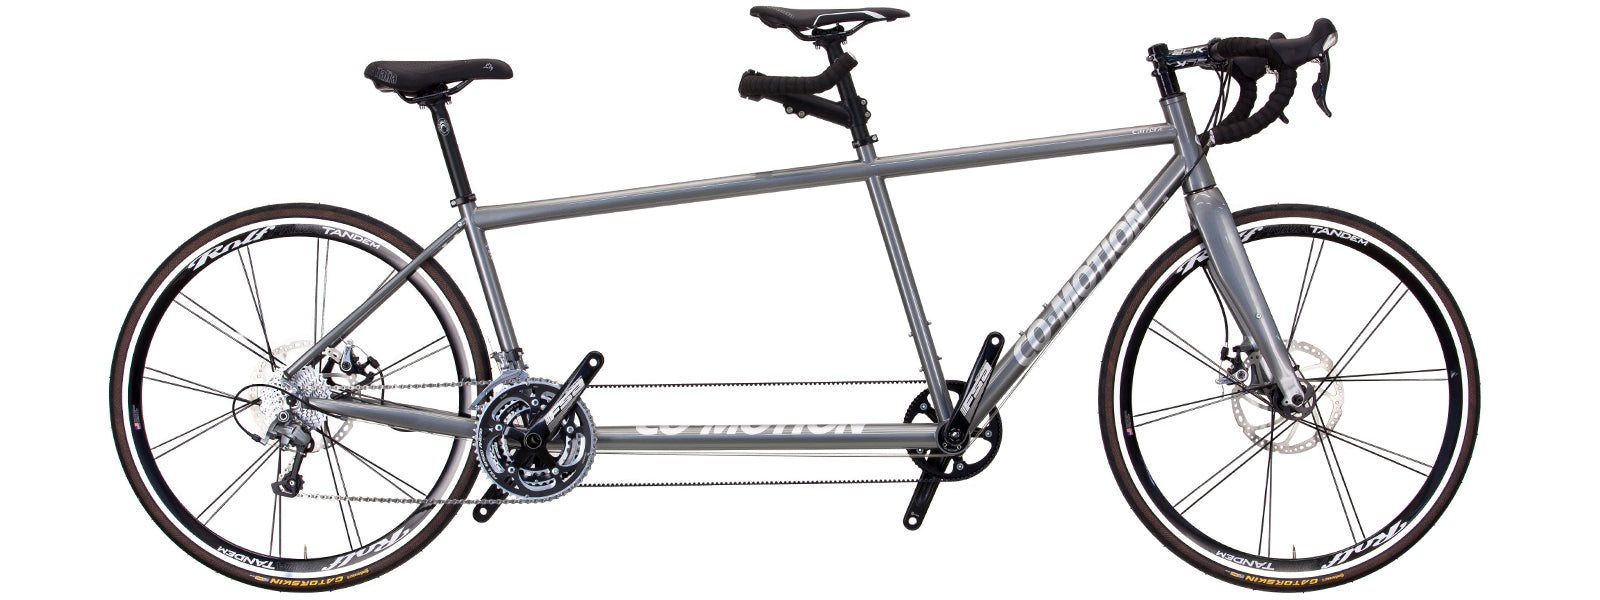 Carrera - Co-Motion Bicycles